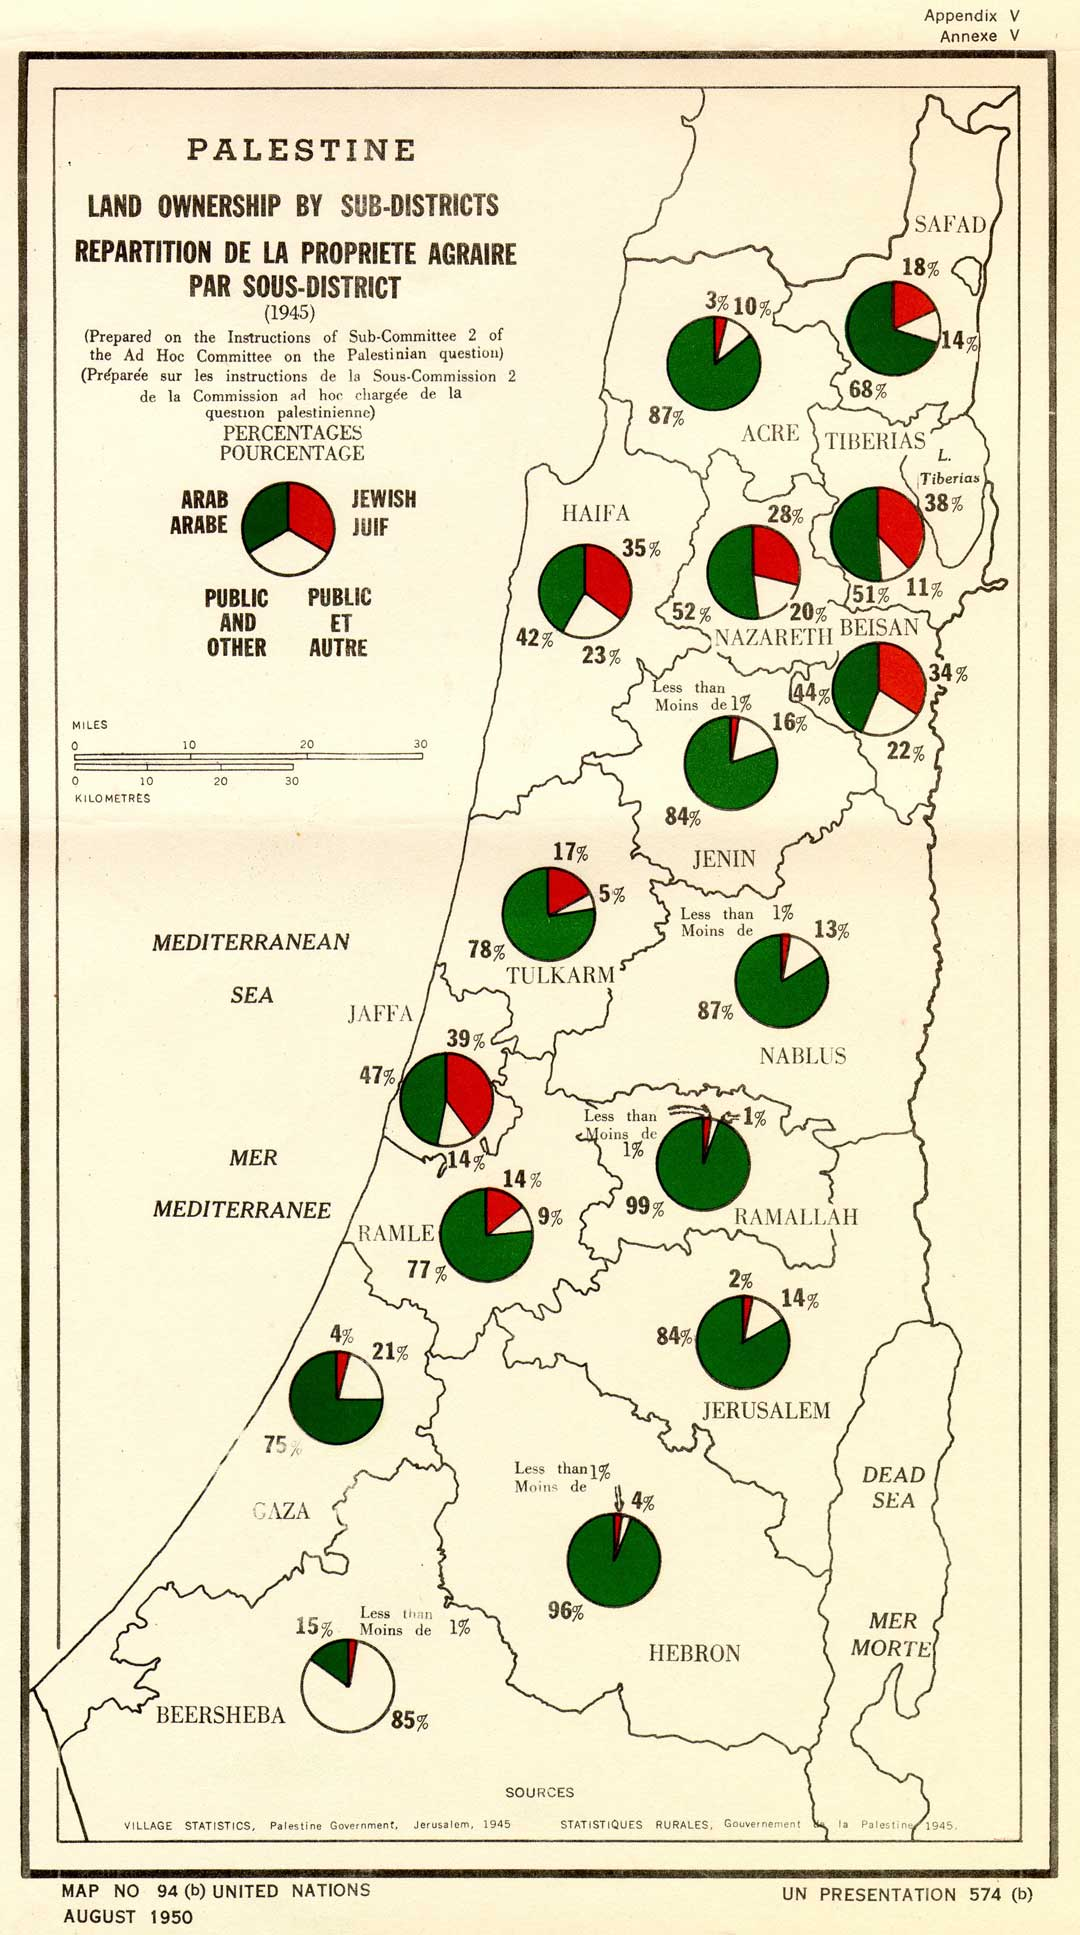 Do the Palestinian territories constitute a de facto state? Why or why not?